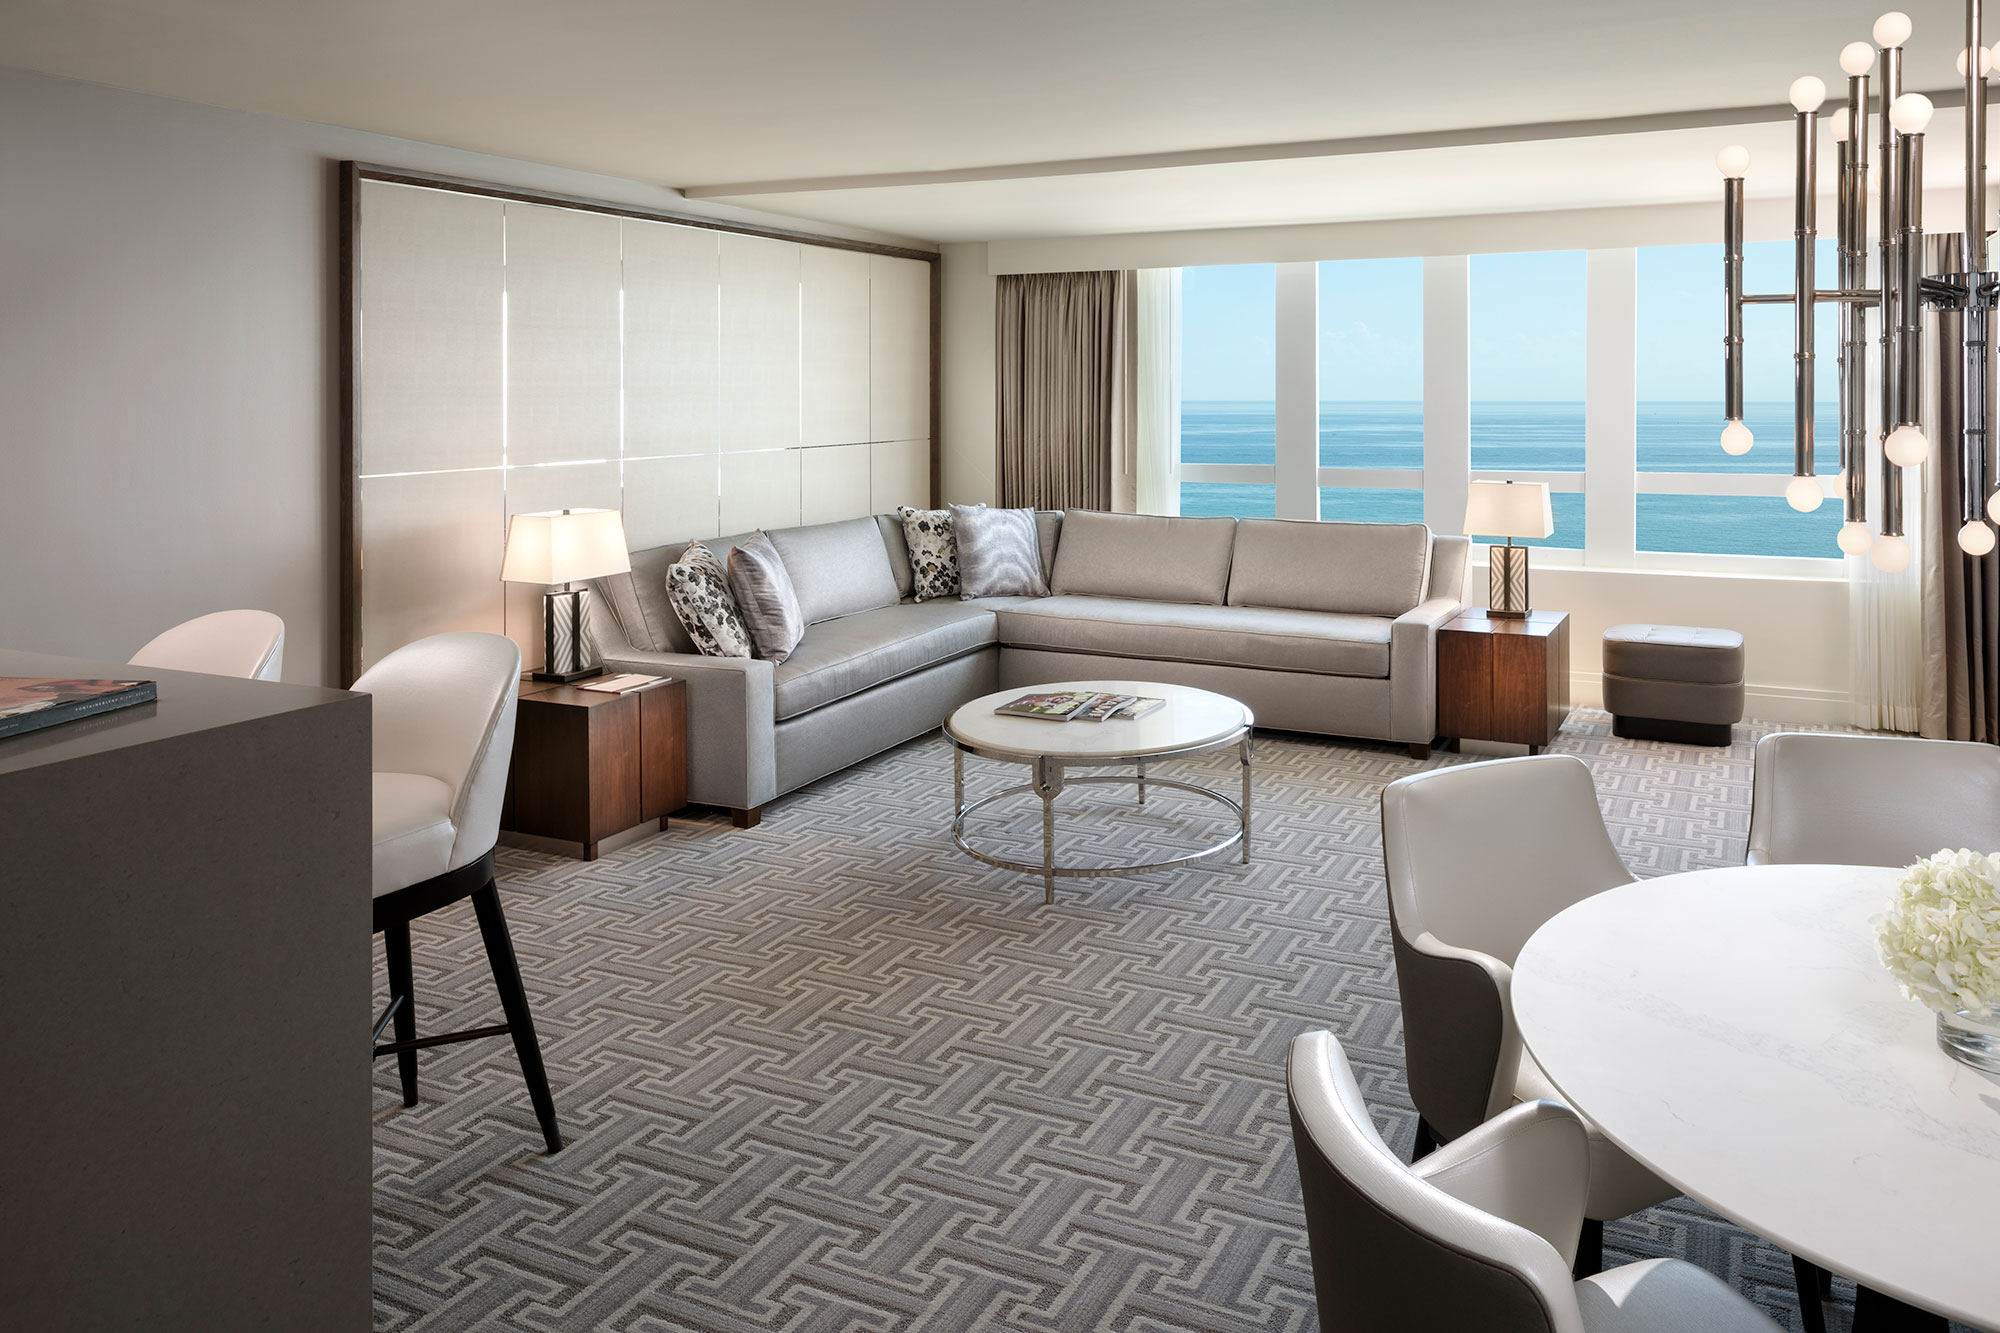 Fontainebleau miami beach rolls out upgraded suites - 2 bedroom hotel suites in miami south beach ...